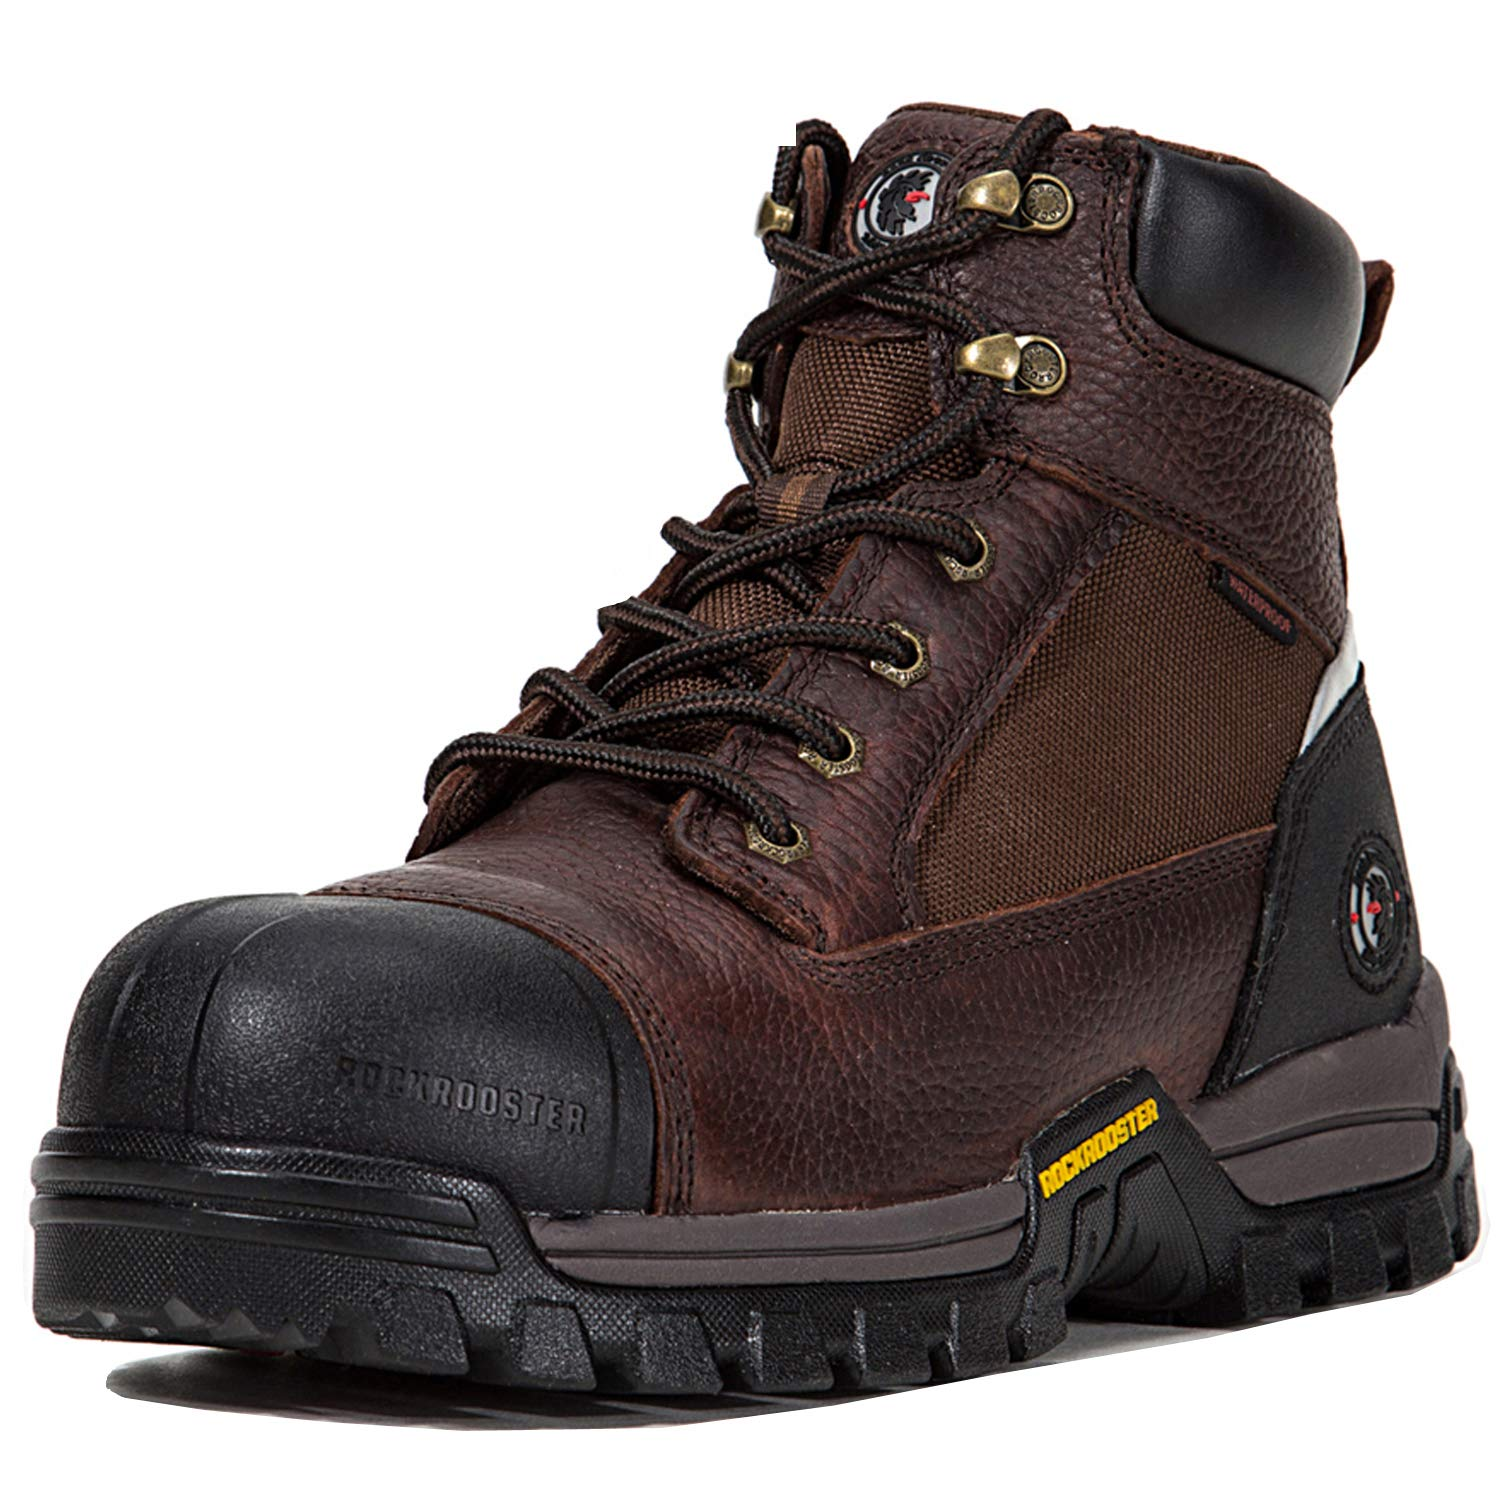 ROCKROOSTER Work Boots for Men, Composite Toe Waterproof Safety Working Shoes / AT872, 10.5-D-BRN by ROCKROOSTER